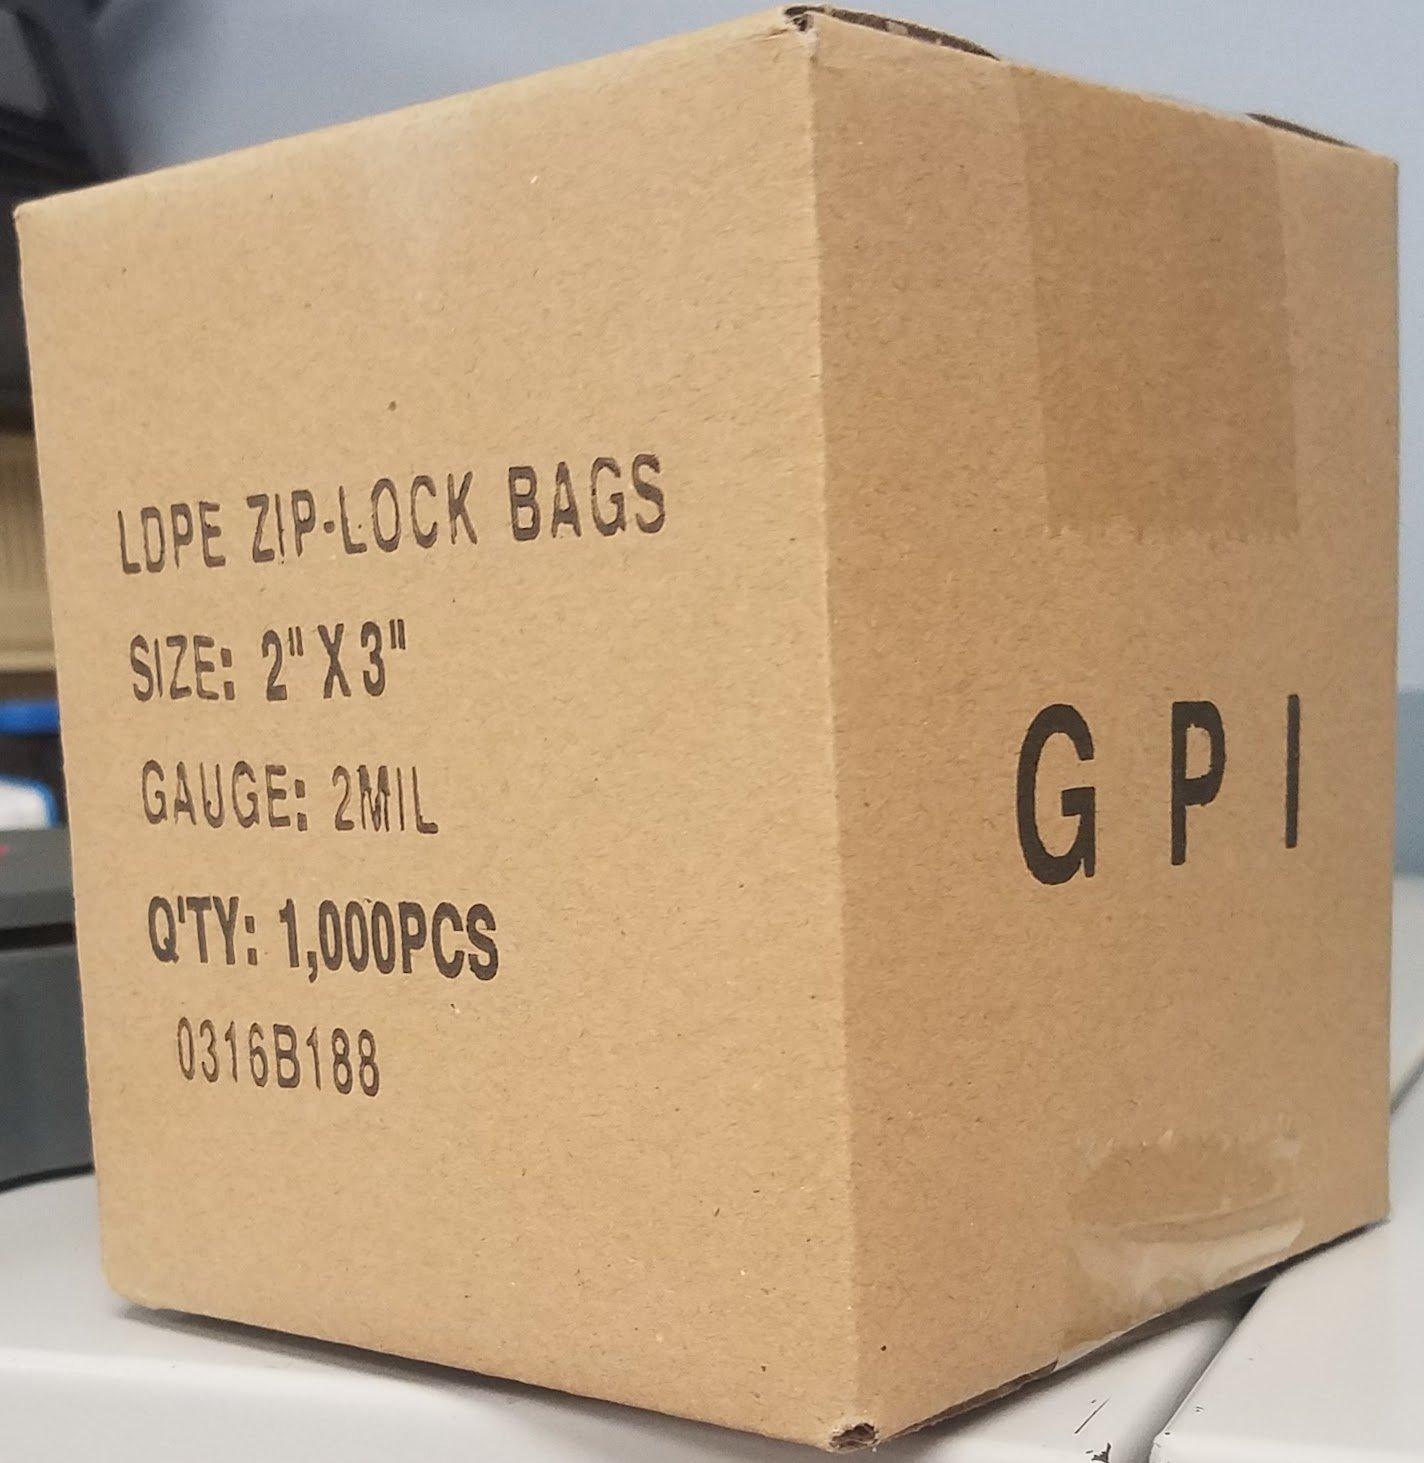 2x3, 2Mil Clear Reclosable Zip Lock Bags, case of 1000